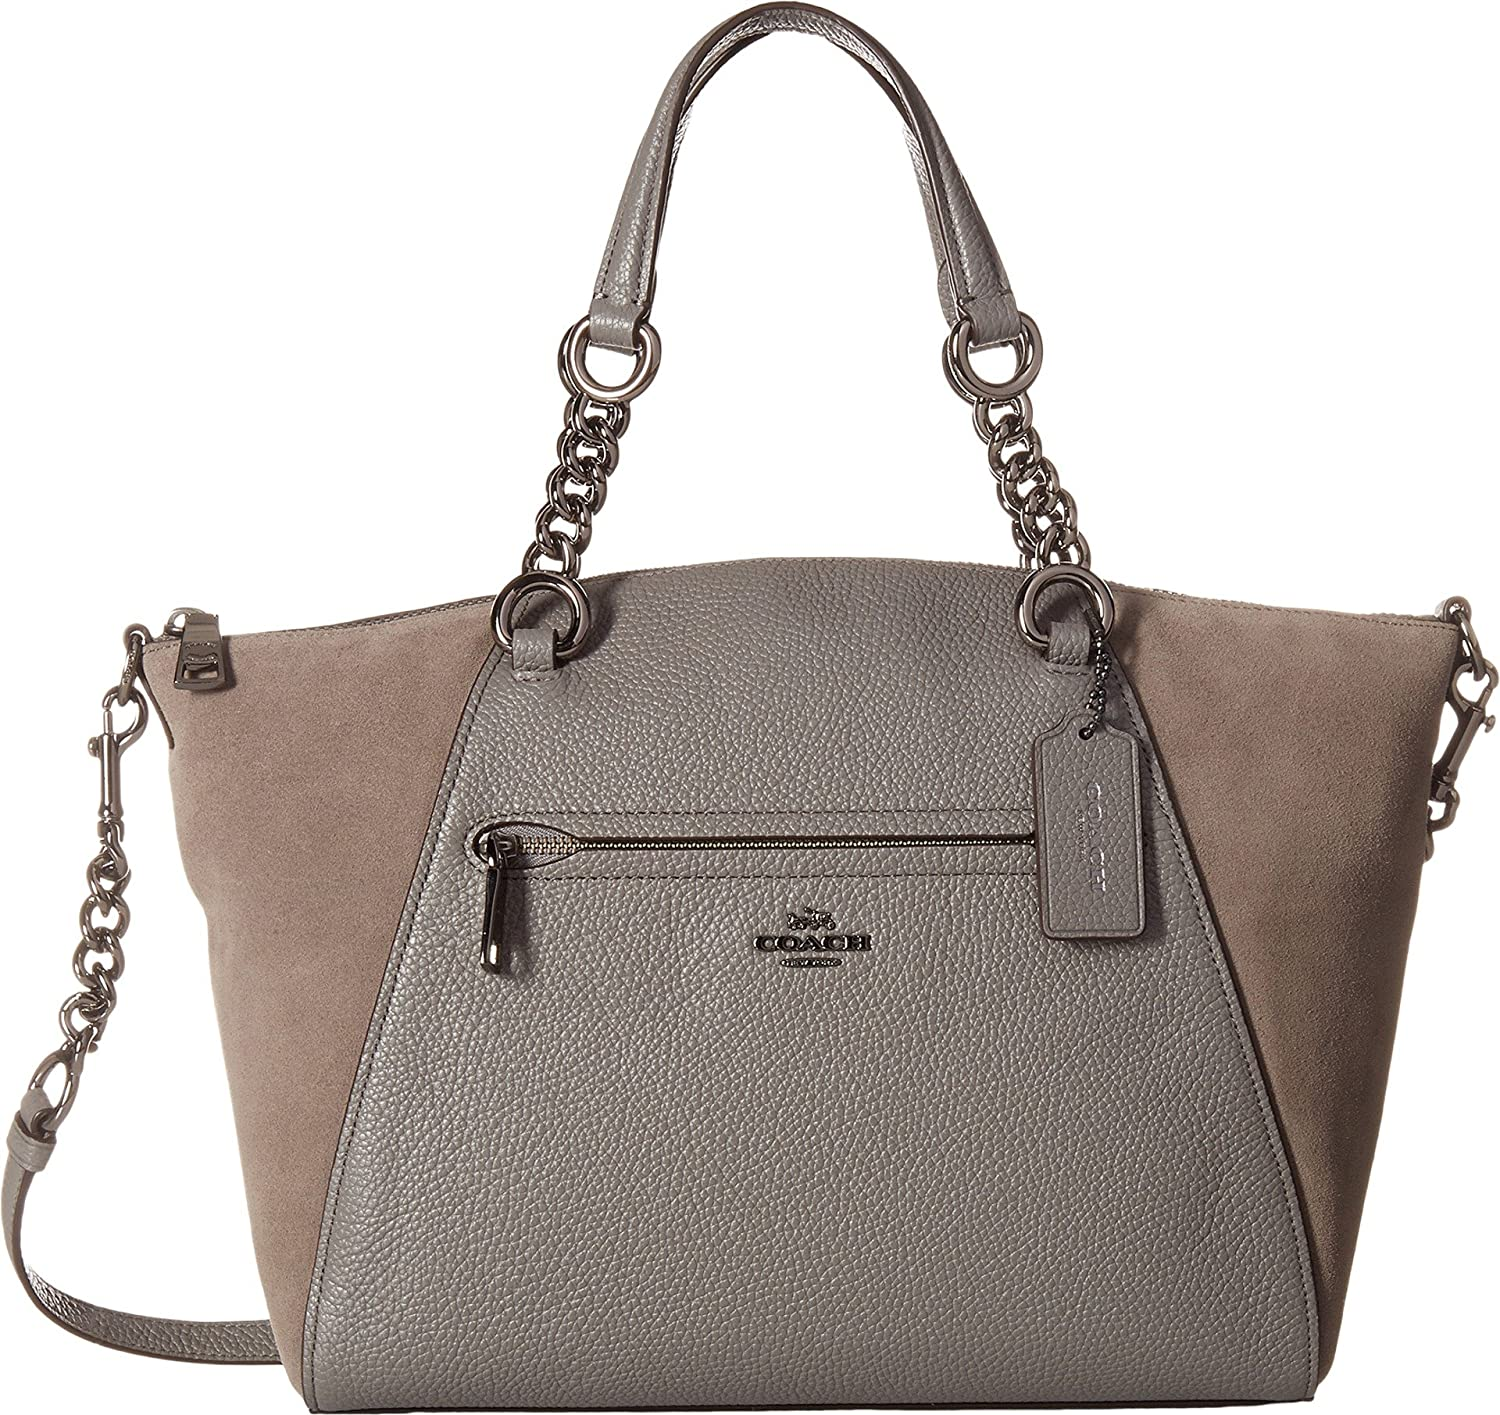 COACH Women's Mixed Leather Chain Satchel 67% OFF of fixed price Prairie Gre Dk Heather New product!!